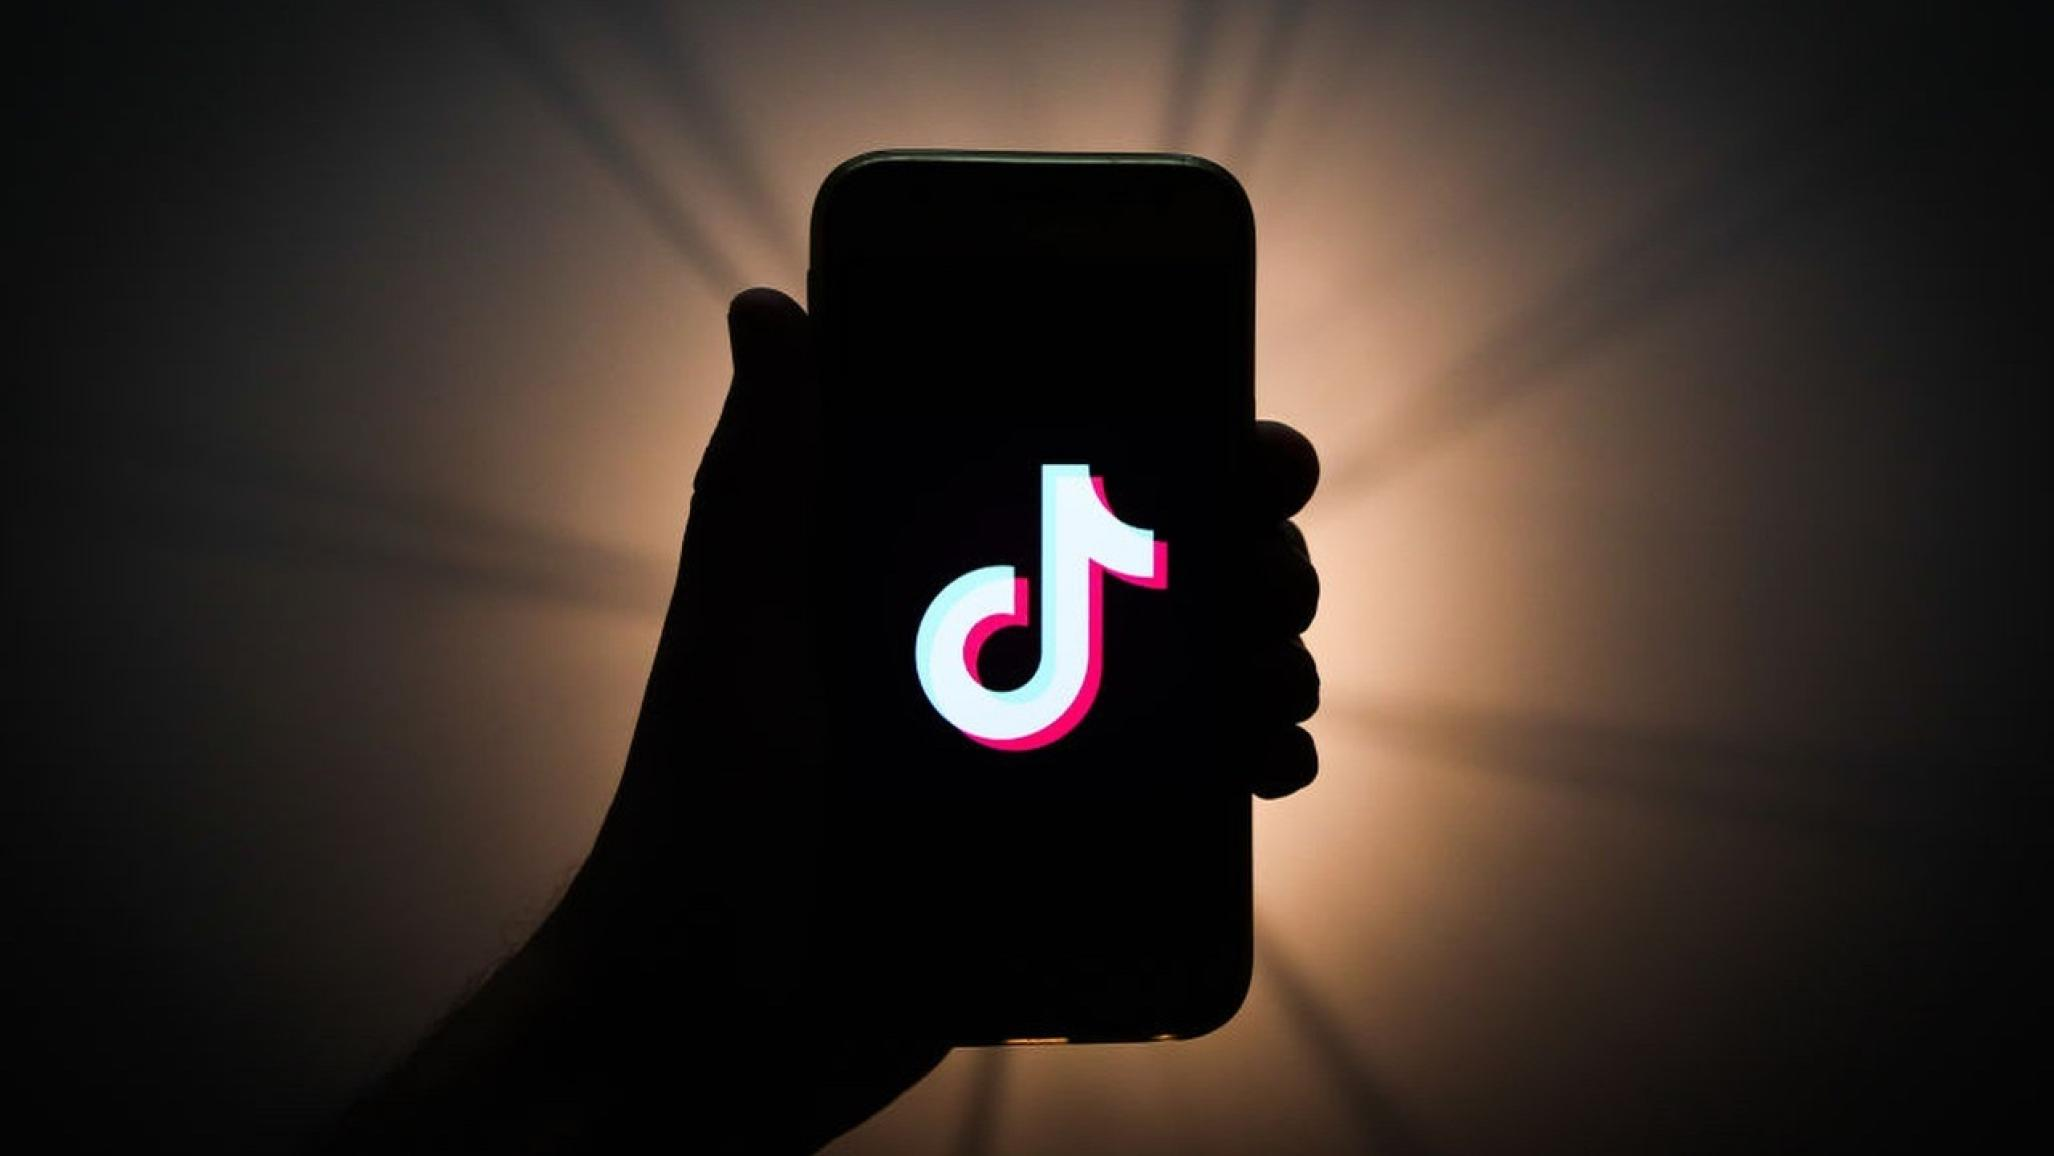 TikTok seems poised for the long-term success that eluded Vine